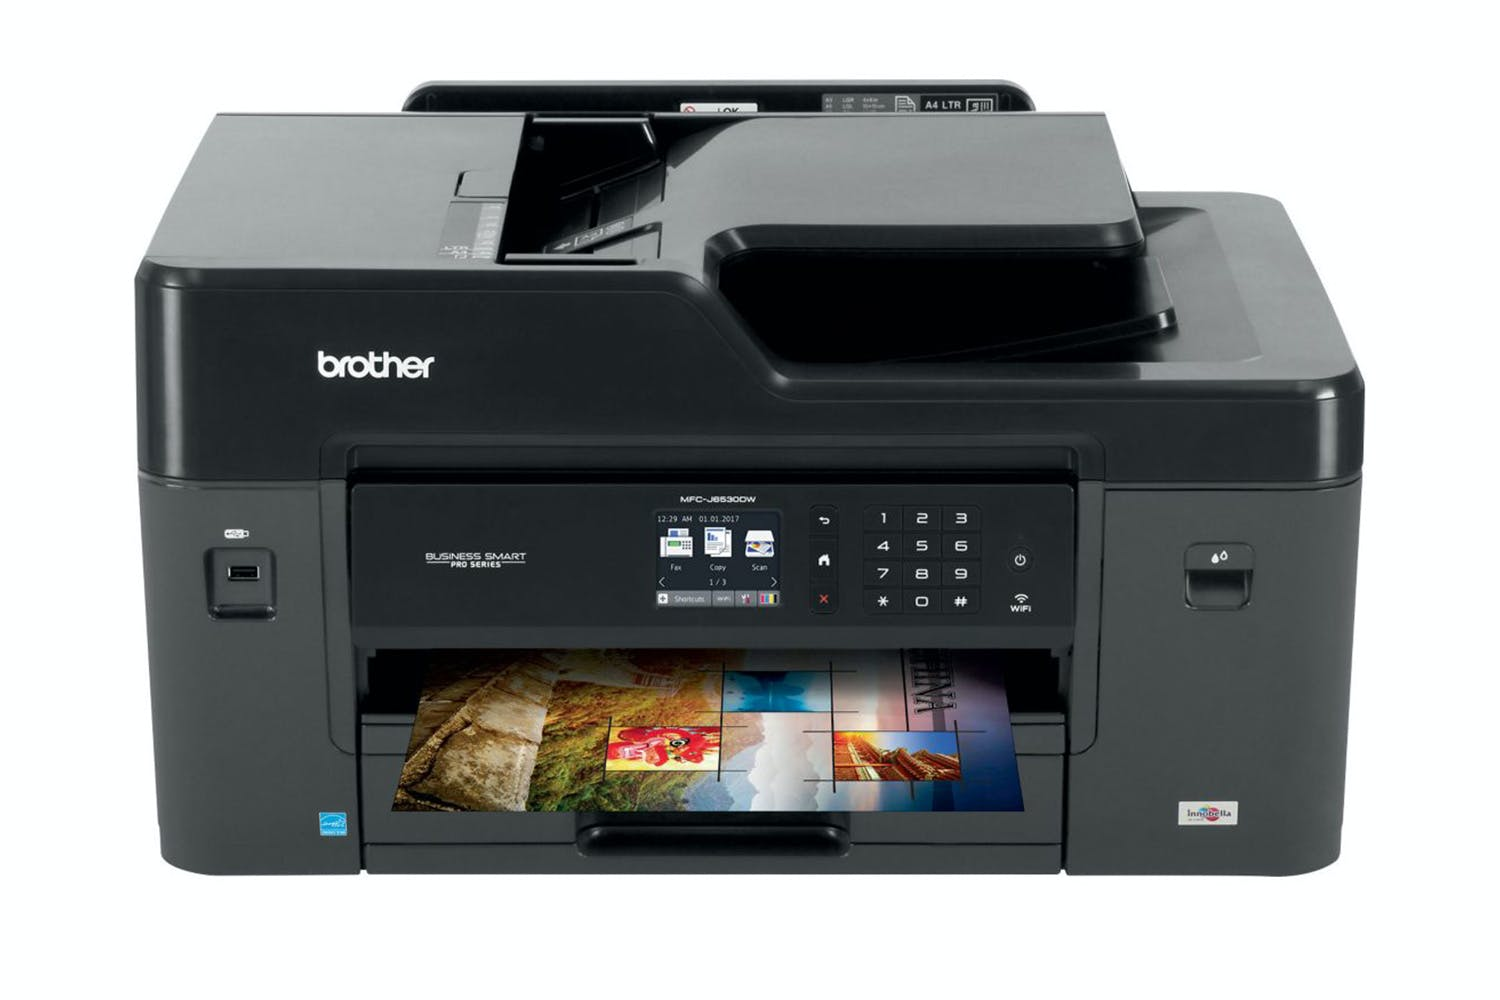 Brother MFC-J6530DW All-in-One A3 Inkjet Printer